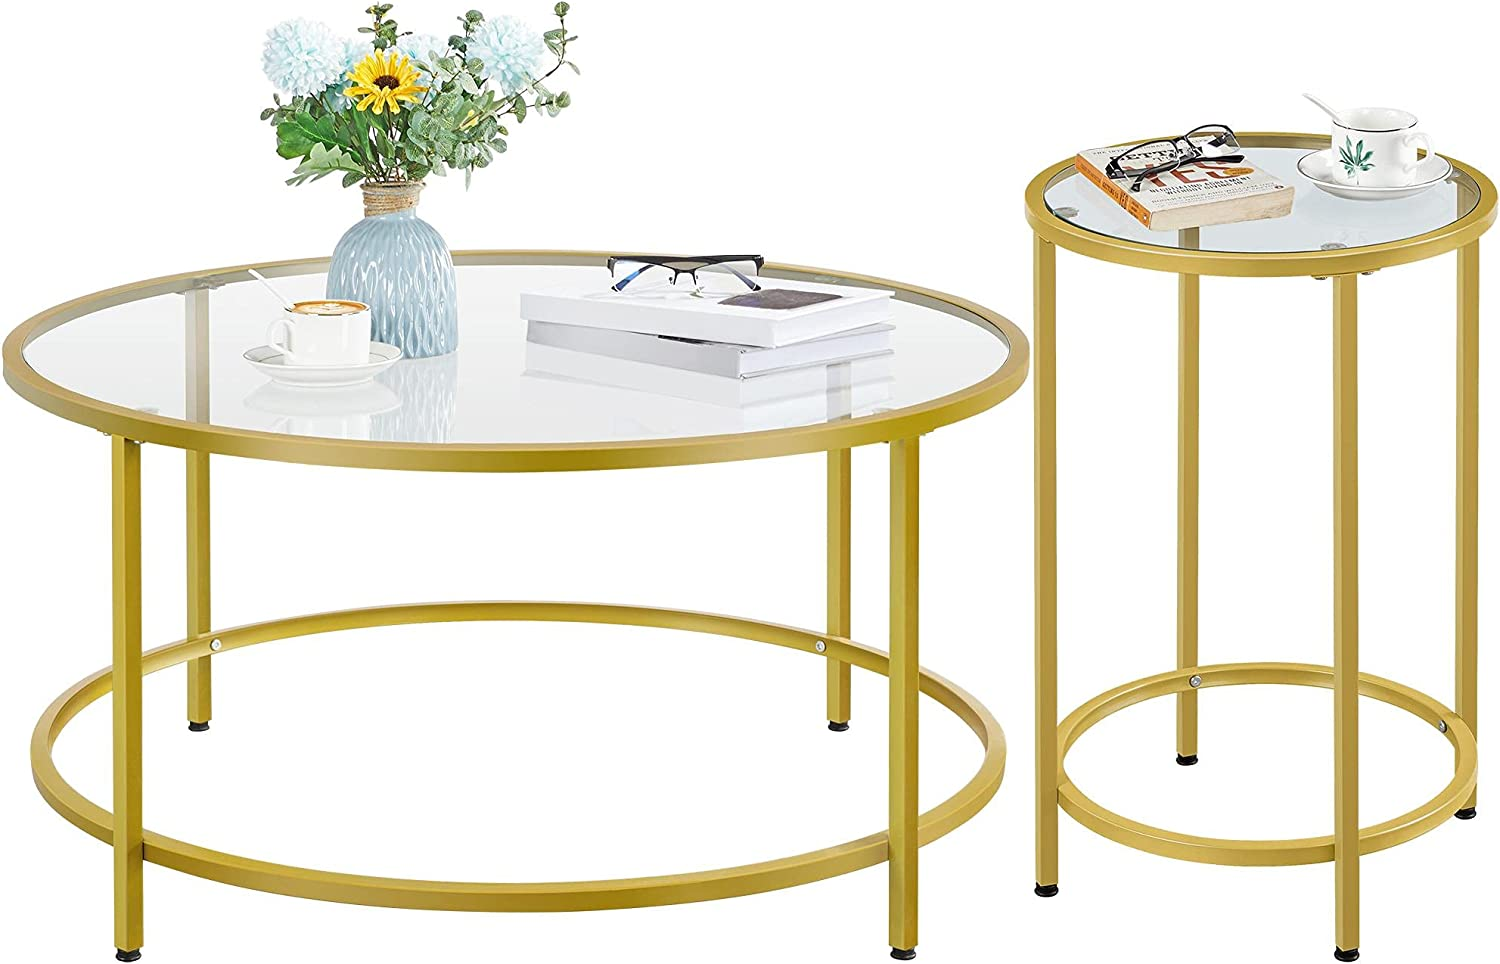 YAHEETECH Set Oakland Mall of 2 Round Coffee Moder low-pricing Accent Table End w